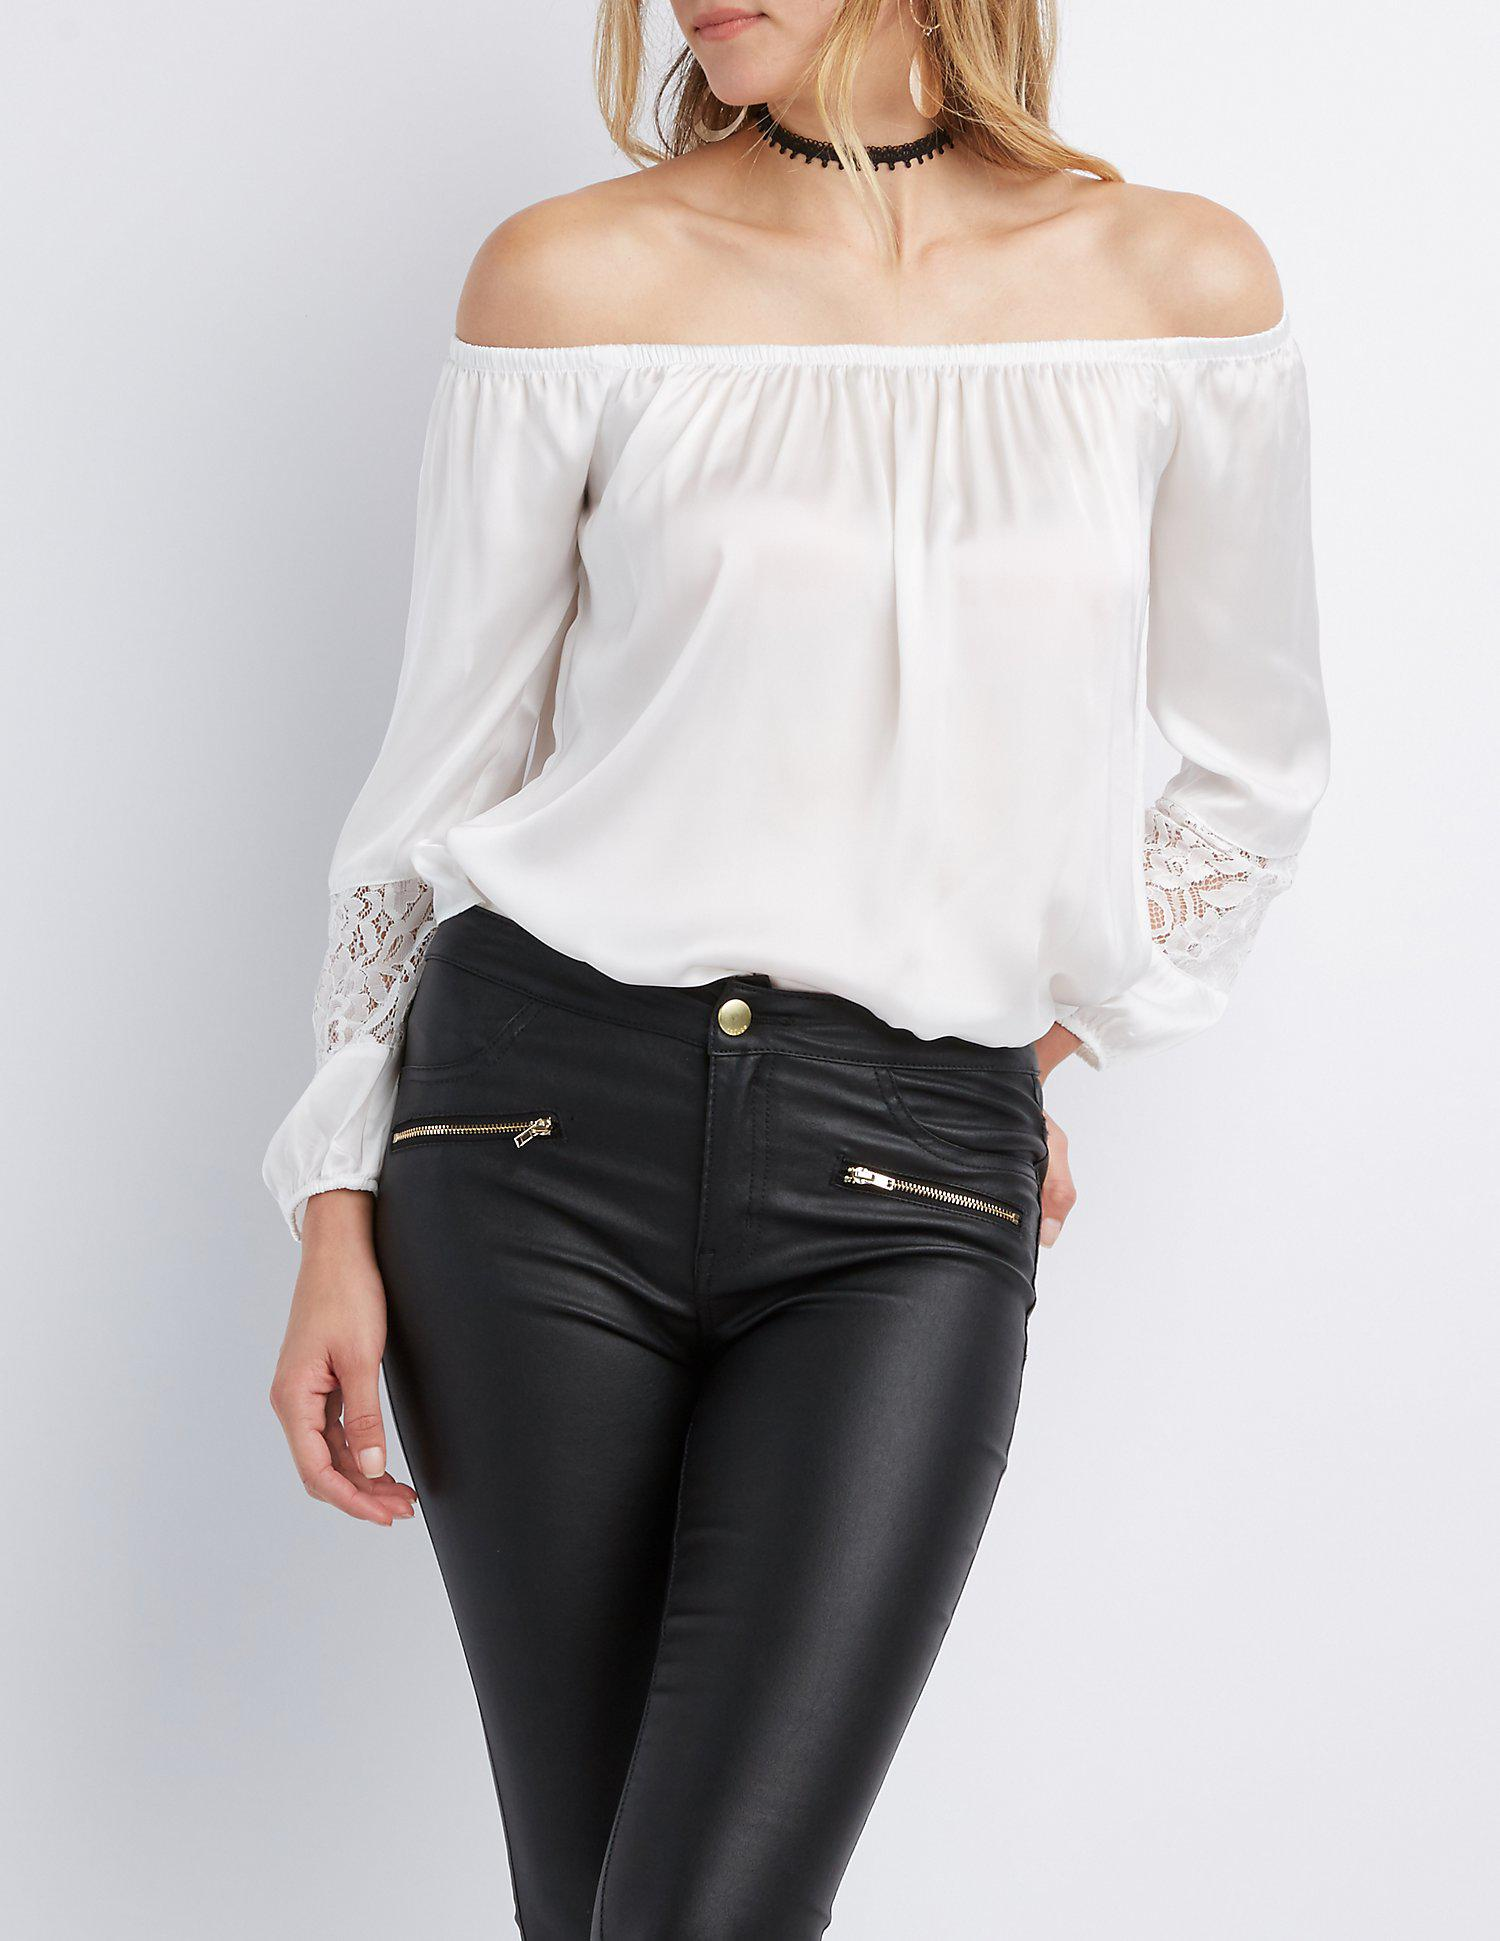 673224b1c7a9d Lyst - Charlotte Russe Satin Off-the-shoulder Top in White - Save 50%